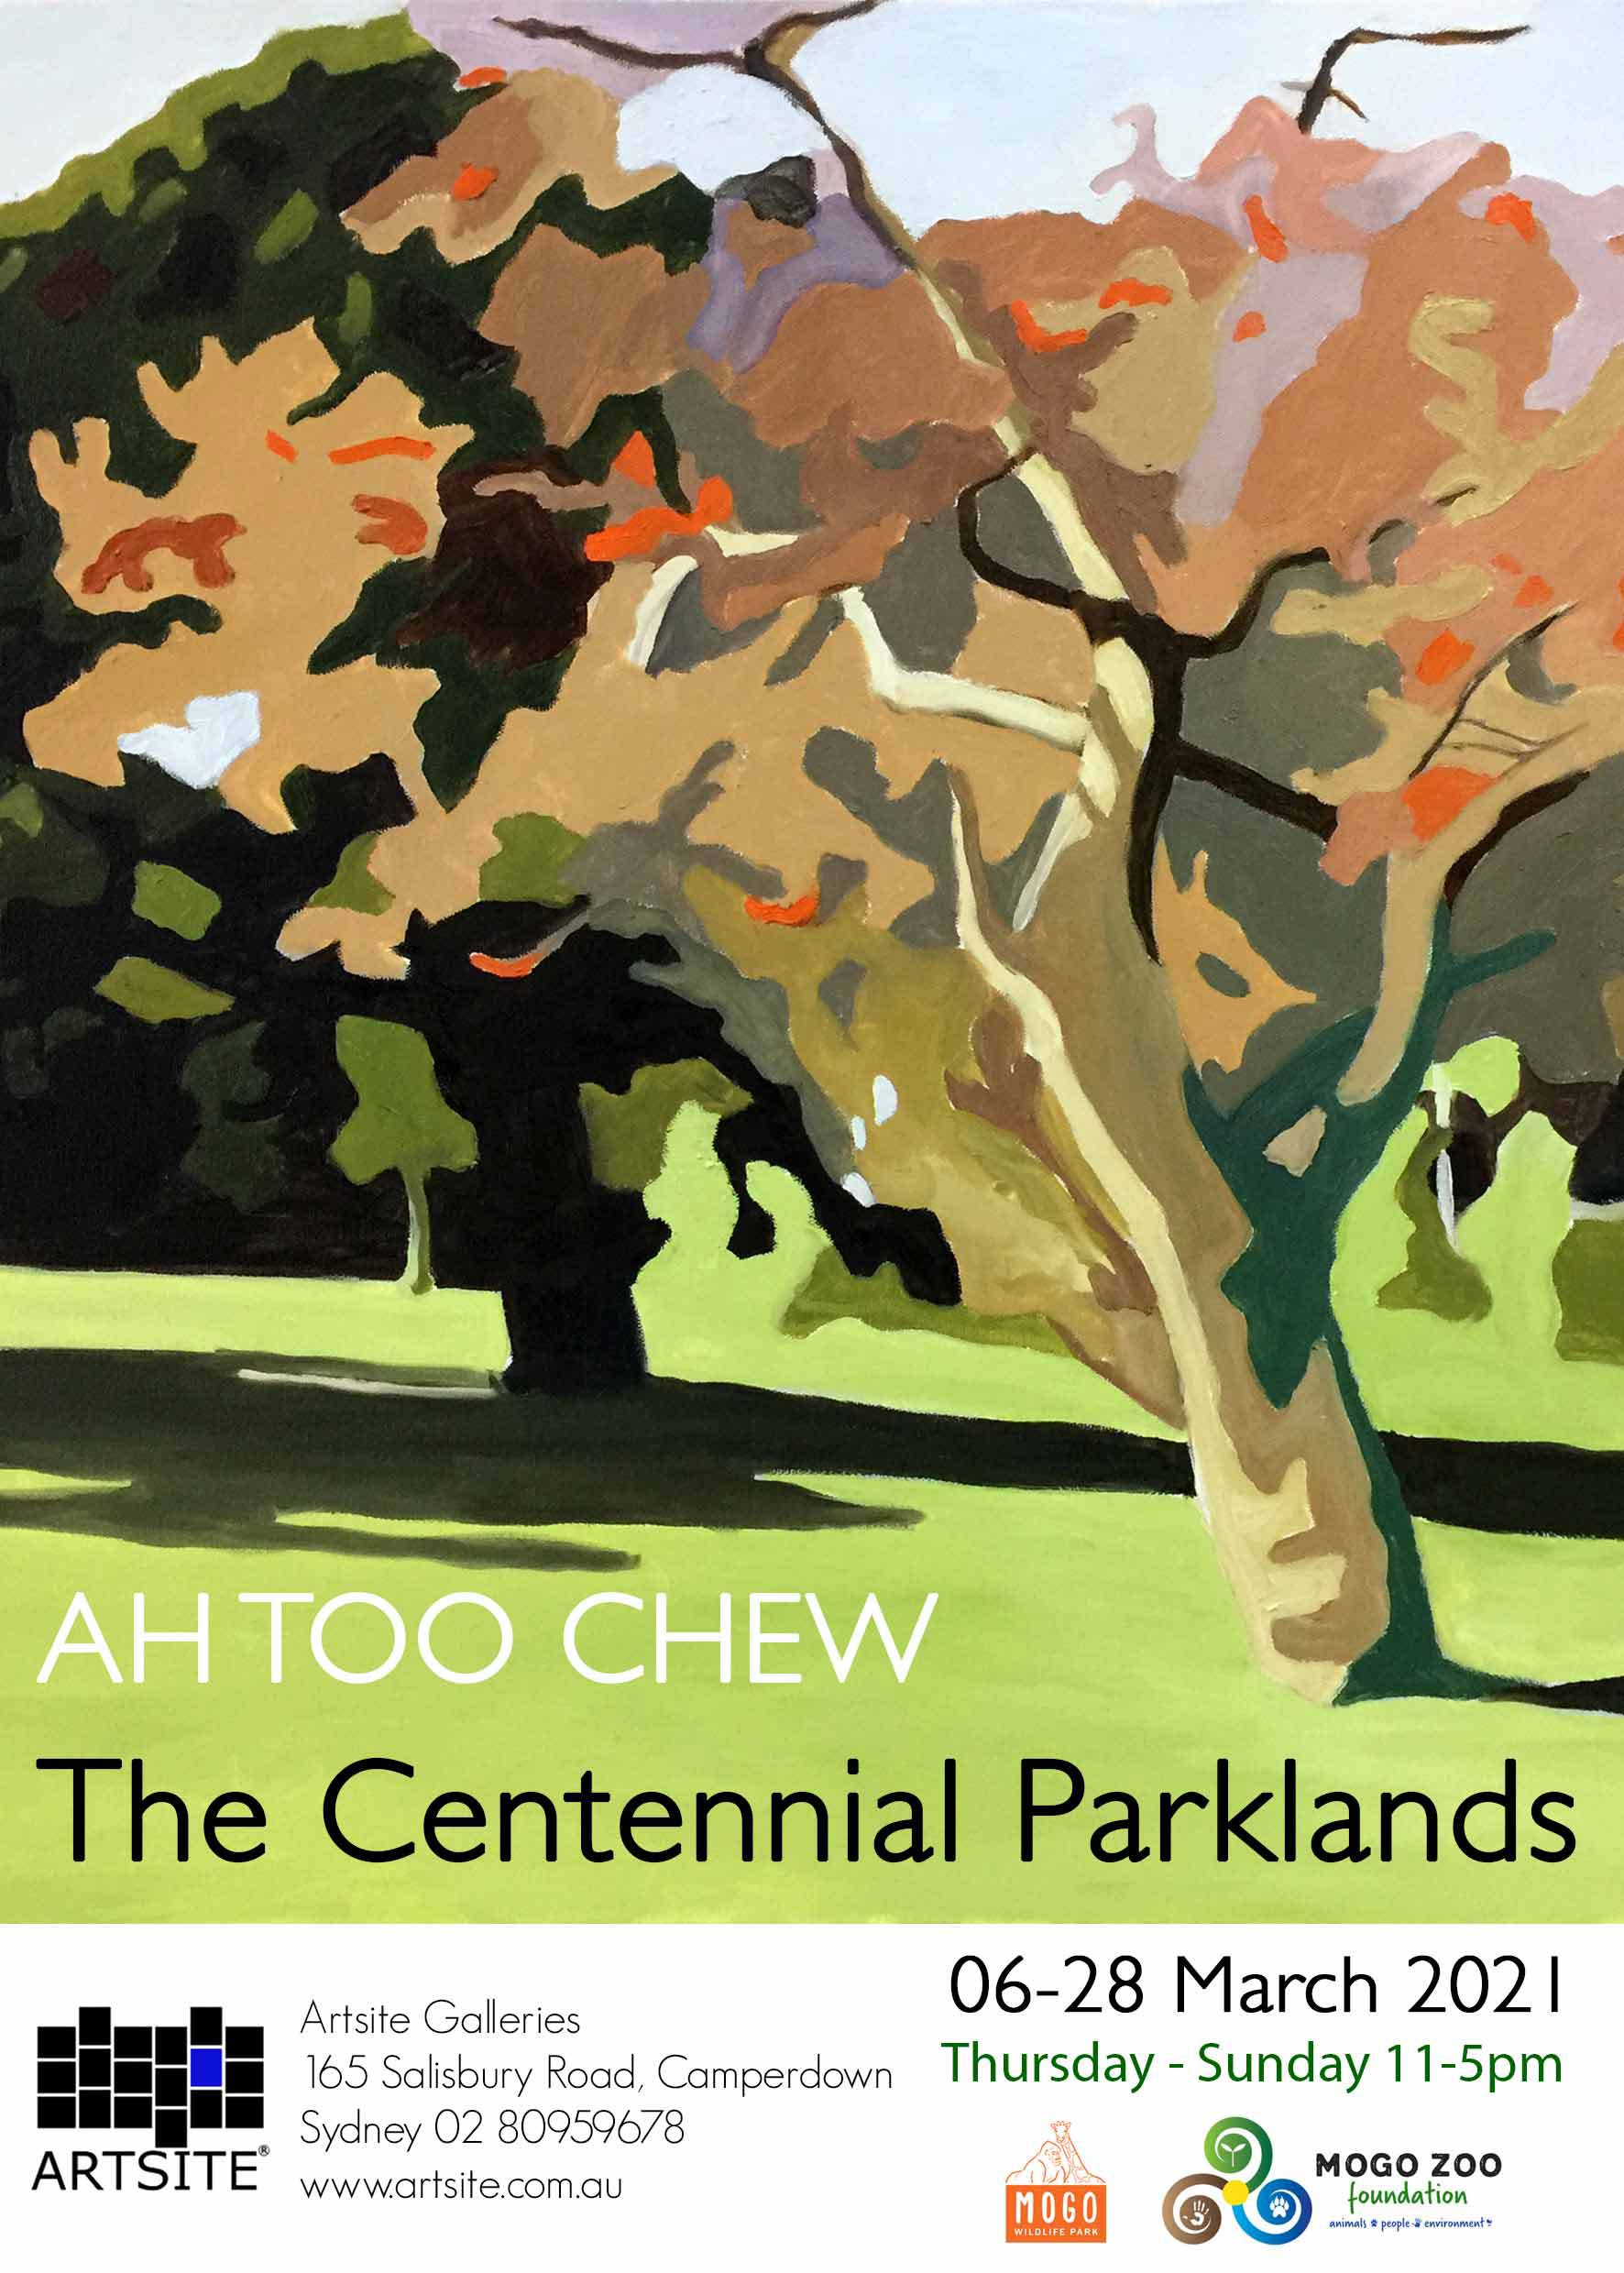 Artsite Galleries | The Centennial Parklands | Ah Too Chew | Solo Exhibition | Thursday - Sunday 11-5pm | 06-28 March 2021.